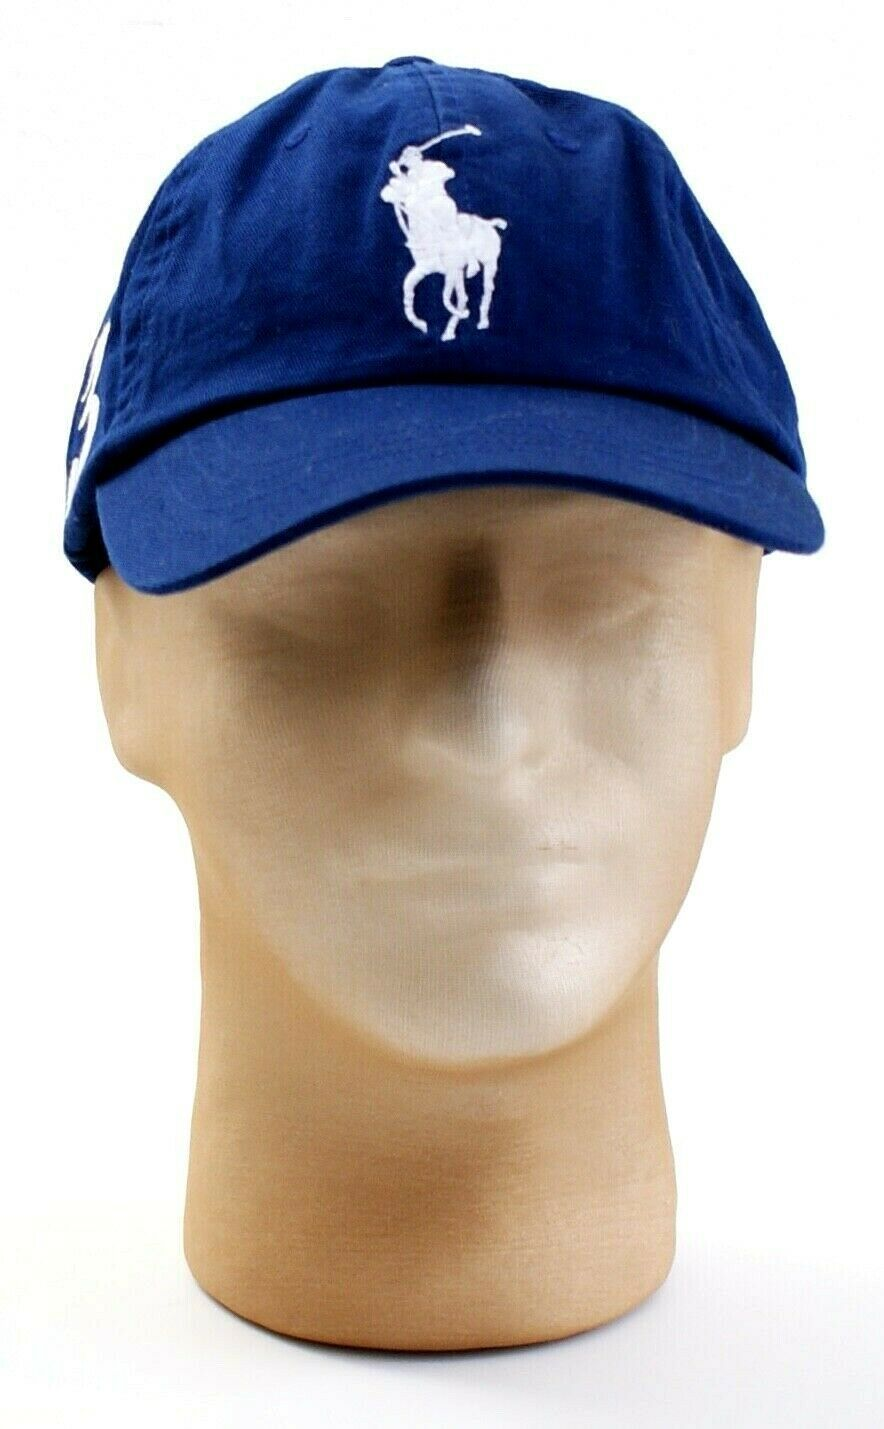 ac4e3052b4984 57. 57. Previous. Polo Ralph Lauren Blue Big White Pony Adjustable Cap Hat  Adult One Size NWT · Polo ...